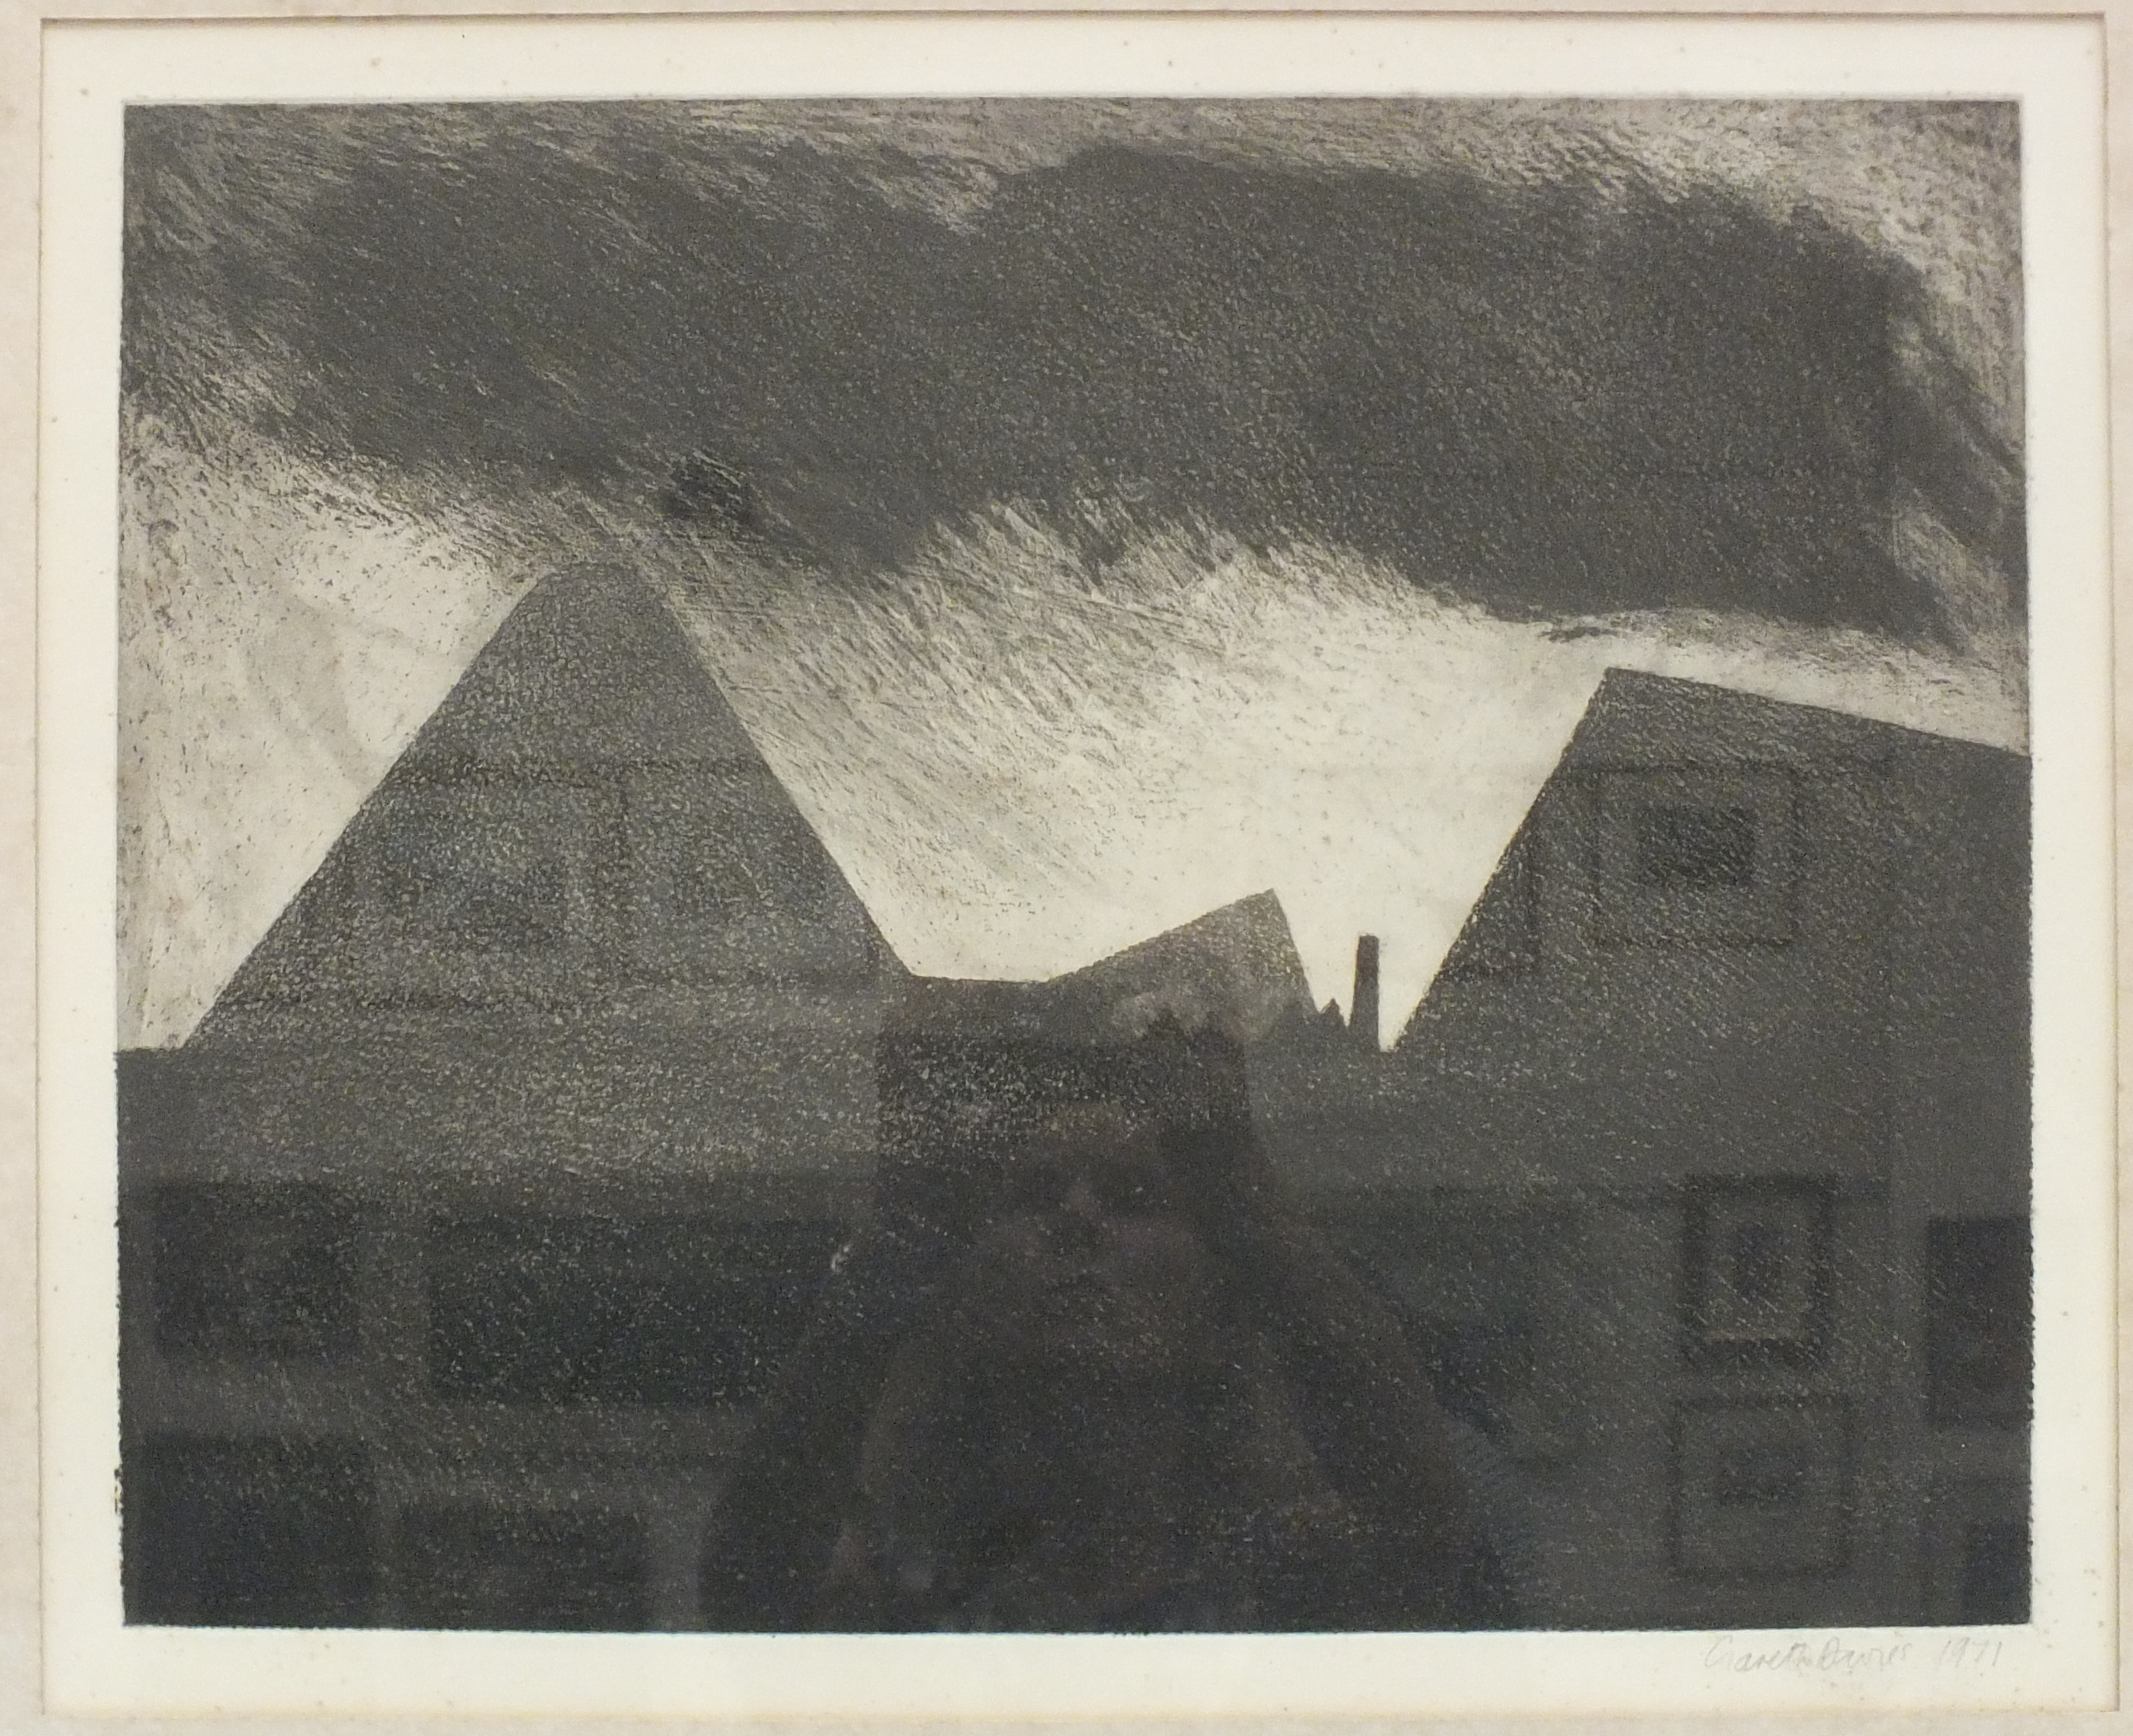 Gareth Davies (b.1937) 'Coal mining landscape', a signed etching, 45 x 54.5cm, signed in pencil on - Image 2 of 2